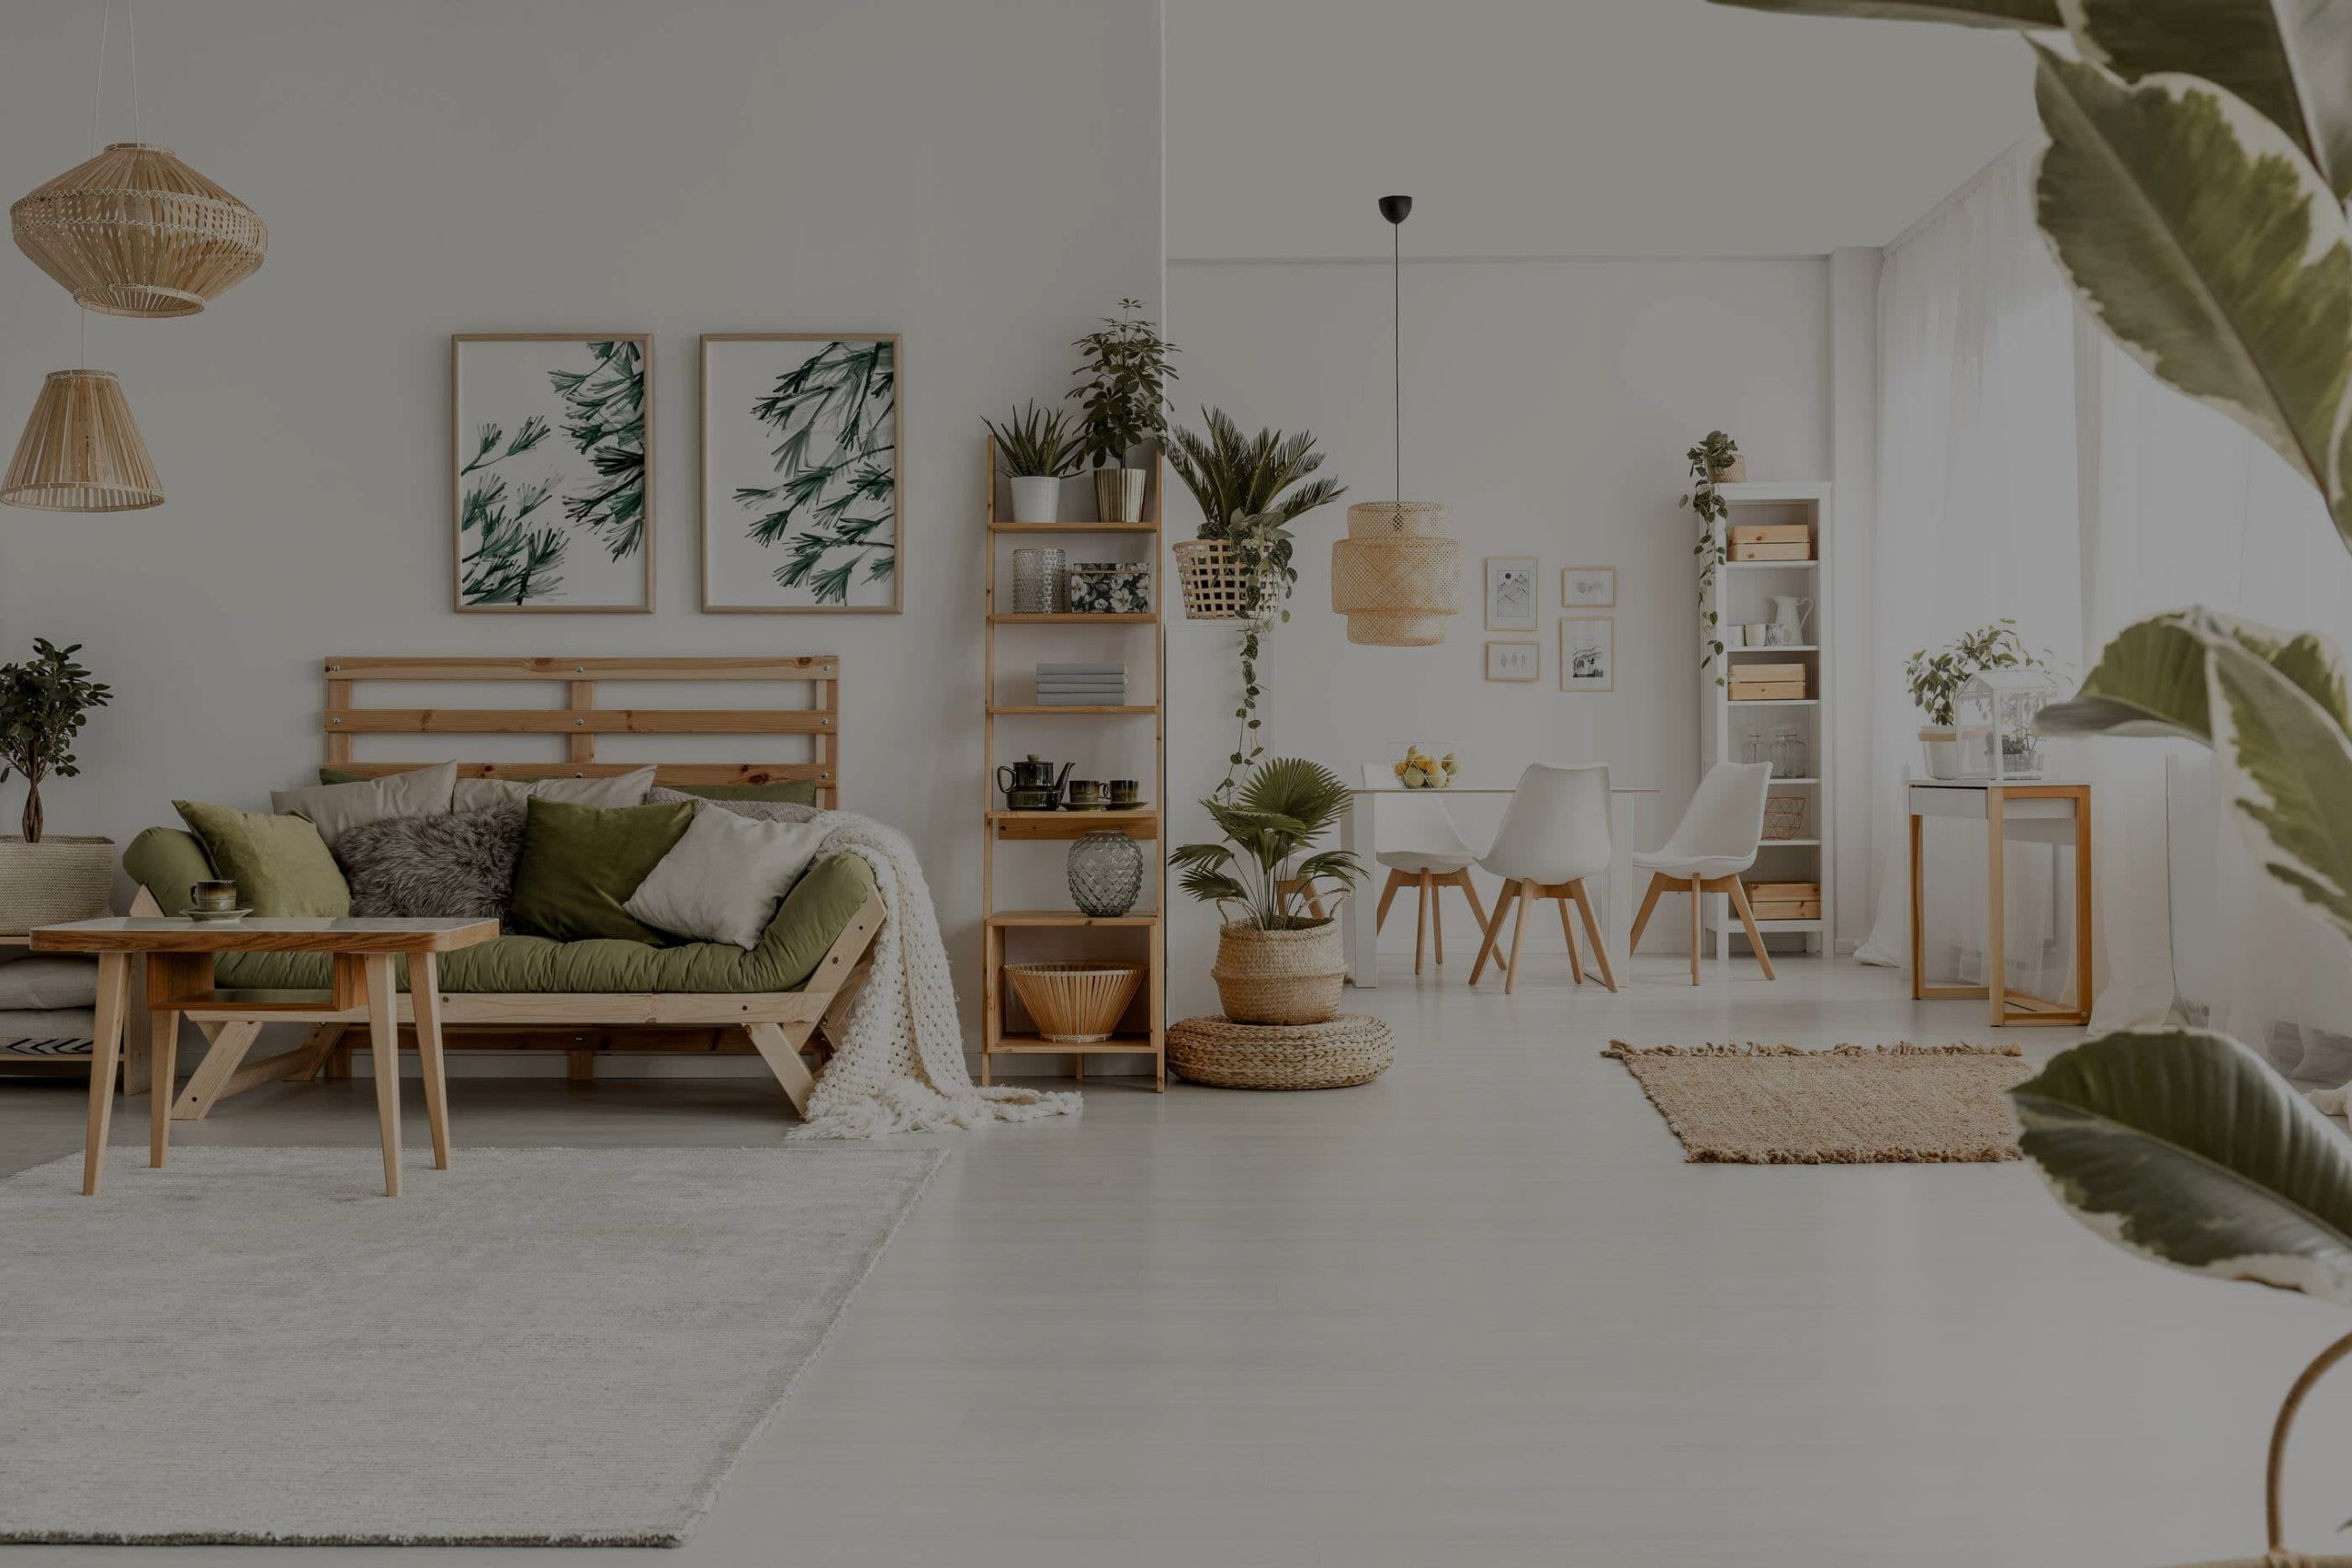 5 Home Seller Strategies for Staging Your Home to Sell